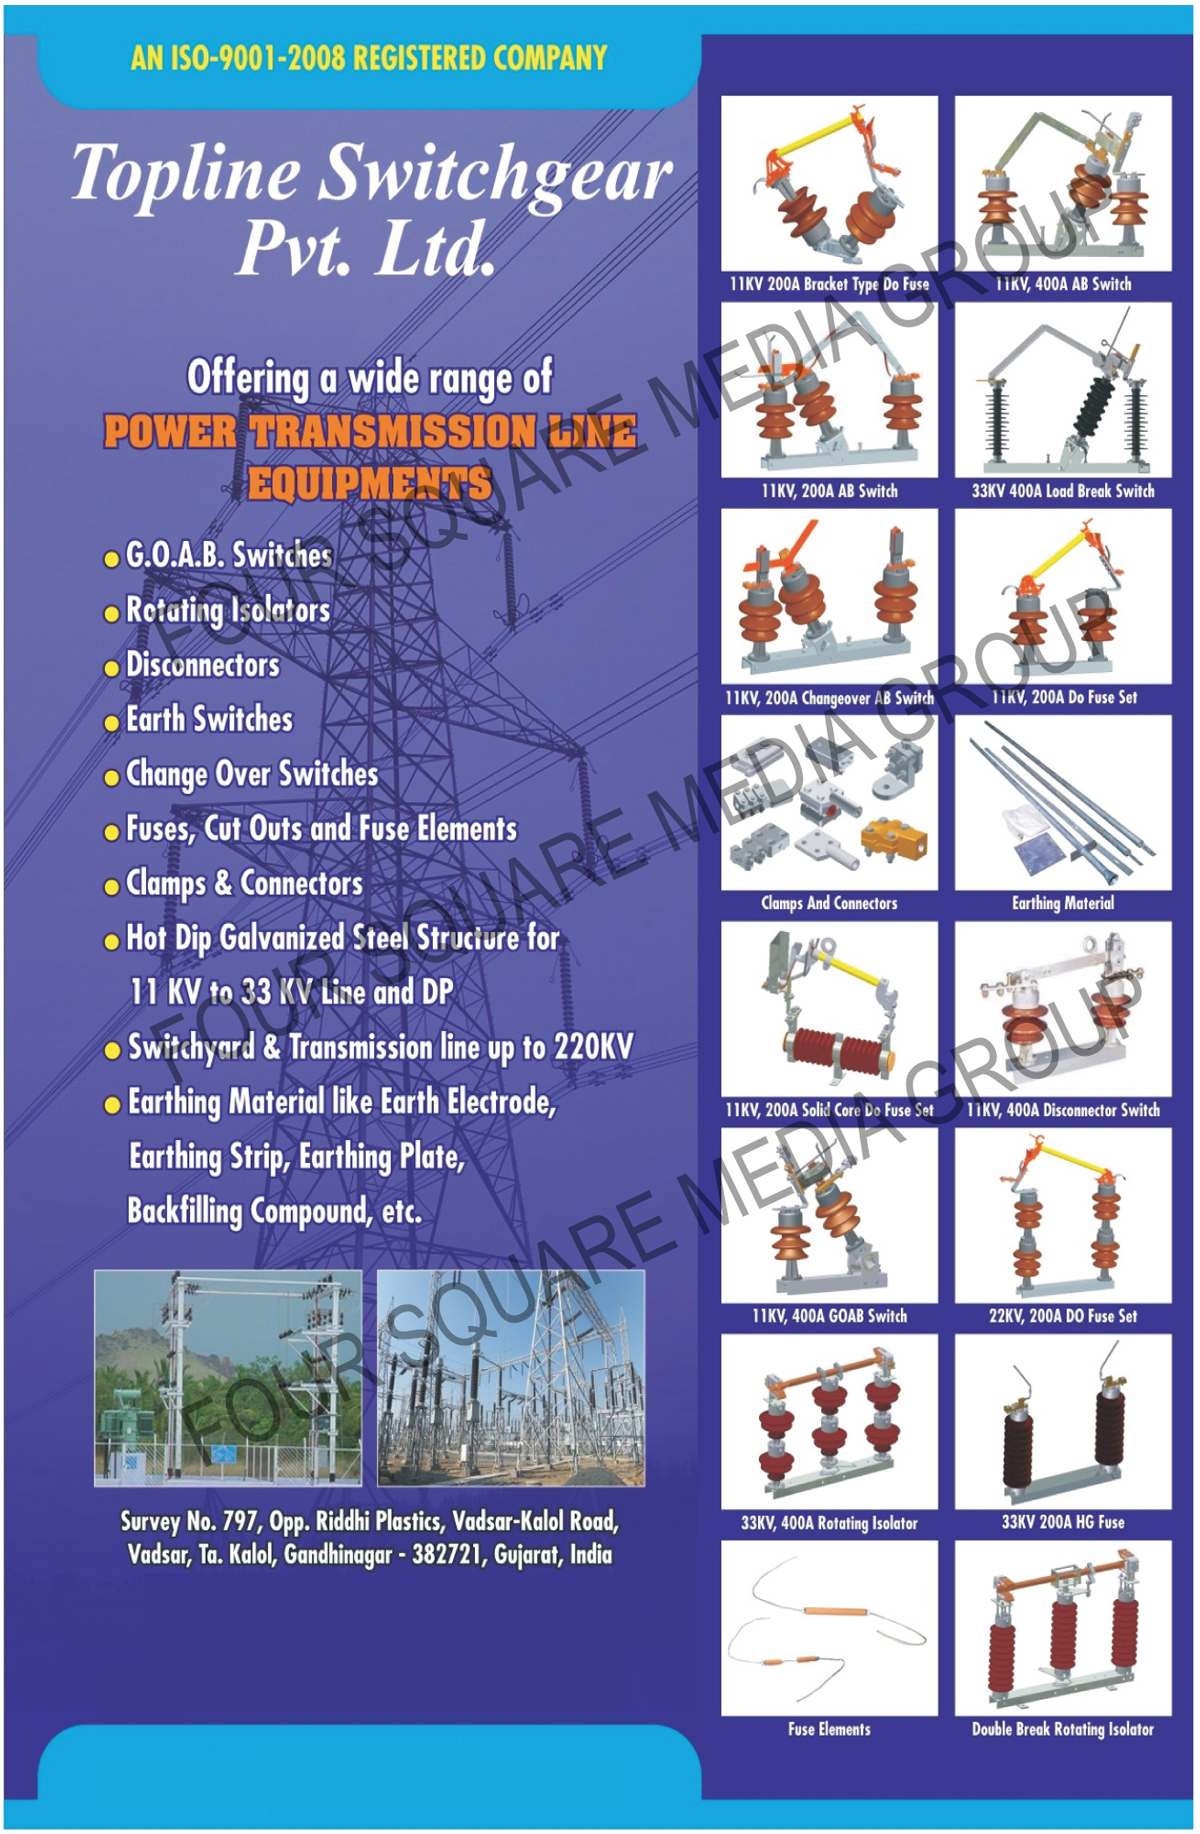 Power Transmission Line Equipments | GOAB Switches | Rotating